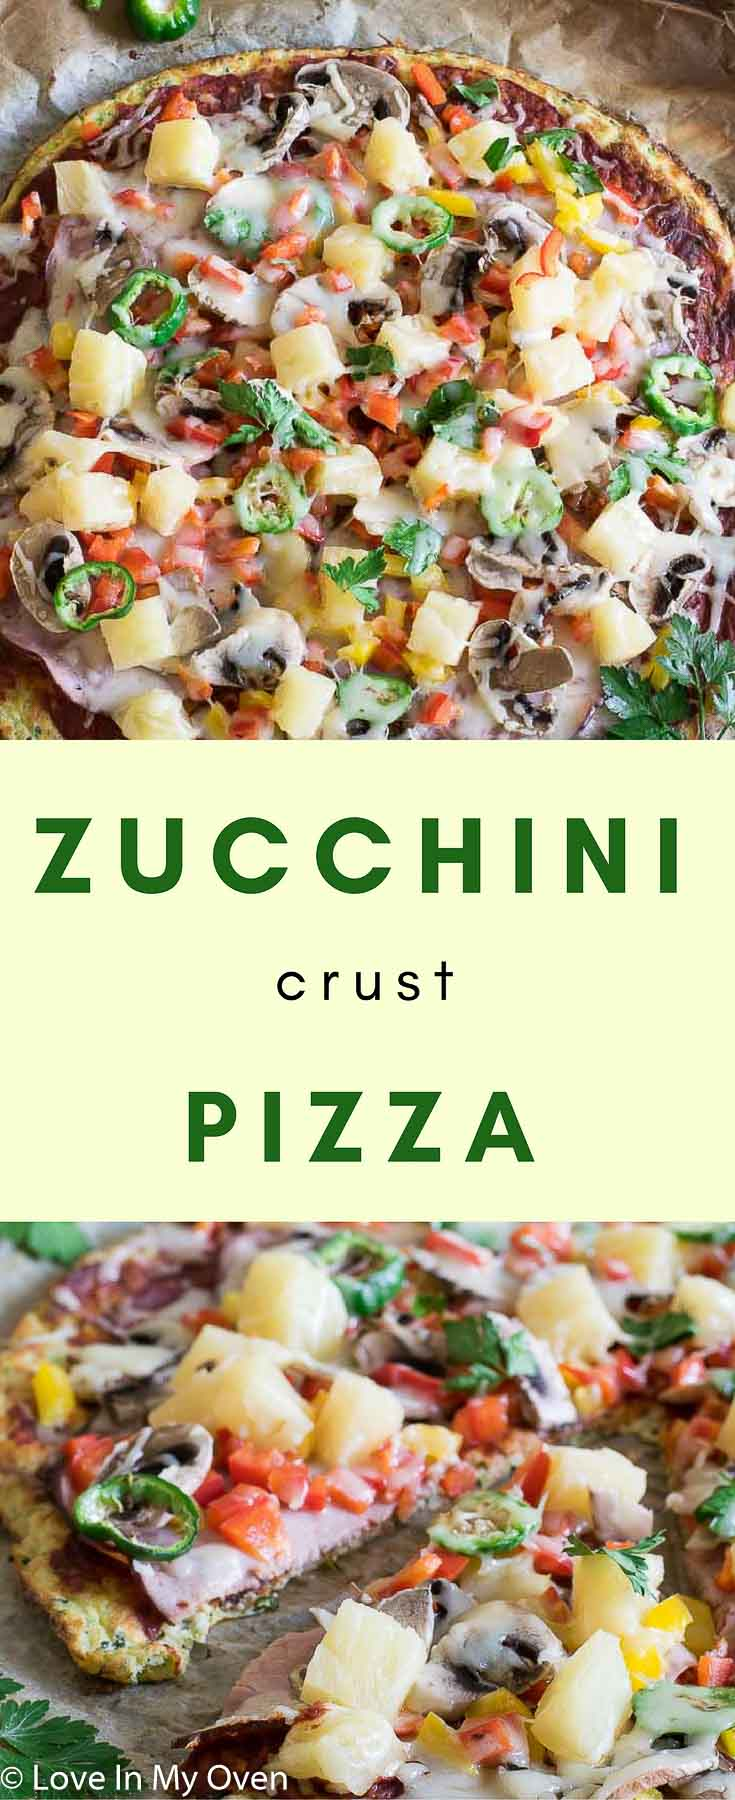 Even the most fierce of zucchini-haters will love this gluten-free zucchini crust pizza with it's light and chewy texture and mild flavour!